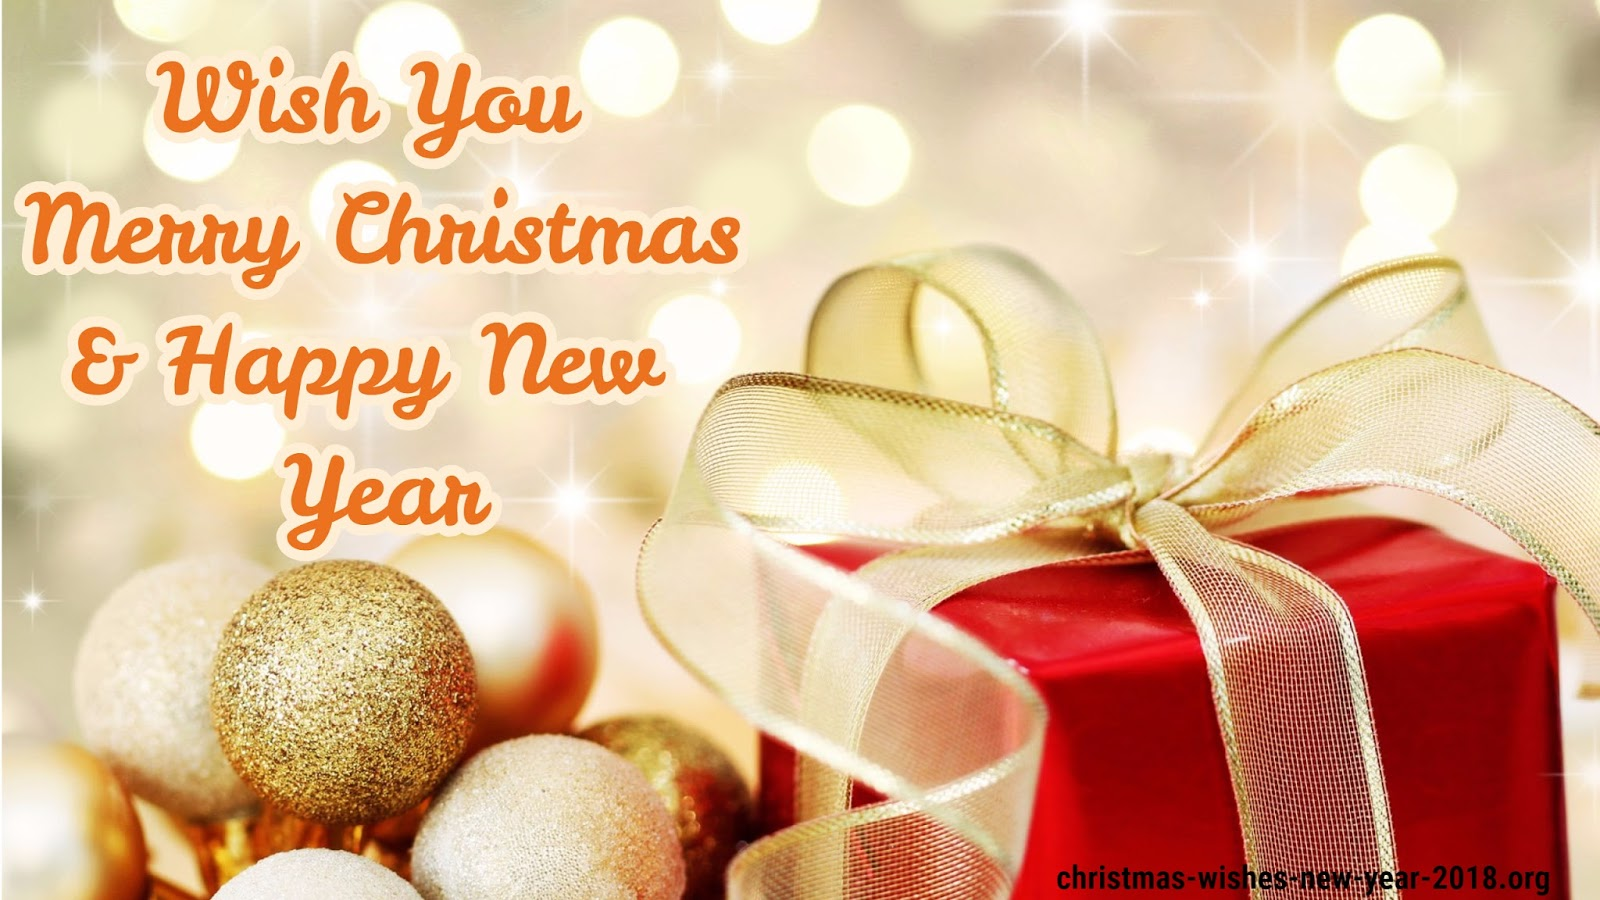 Merry Christmas SMS Wishes For Friends and Family - Merry Christmas ...